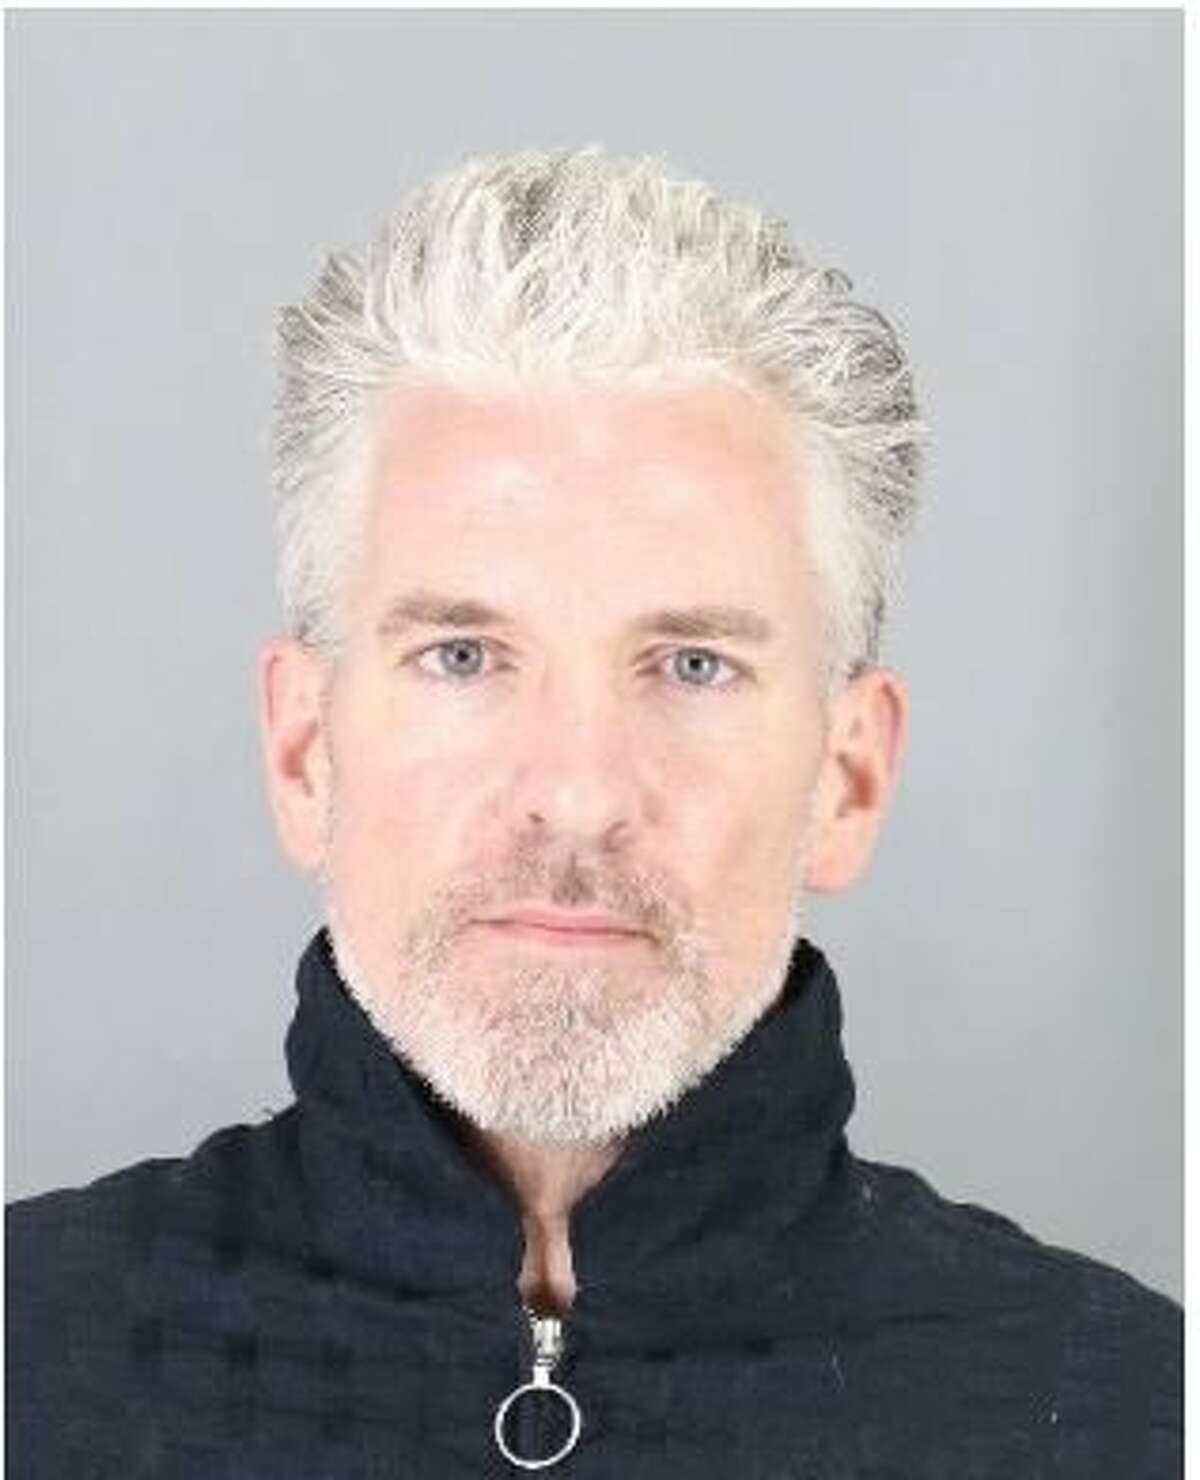 DermotO'Sullivan, 48, is accused of walking into the SFO Terminal 3 baggage claim area on February 17, 2019 and swiping a case from the rotating carousel, which was packed with aGlock9mm pistol, two magazines, 20 rounds of ammunition, two flashlights and a firearm holster, according to the San Francisco Police Department.